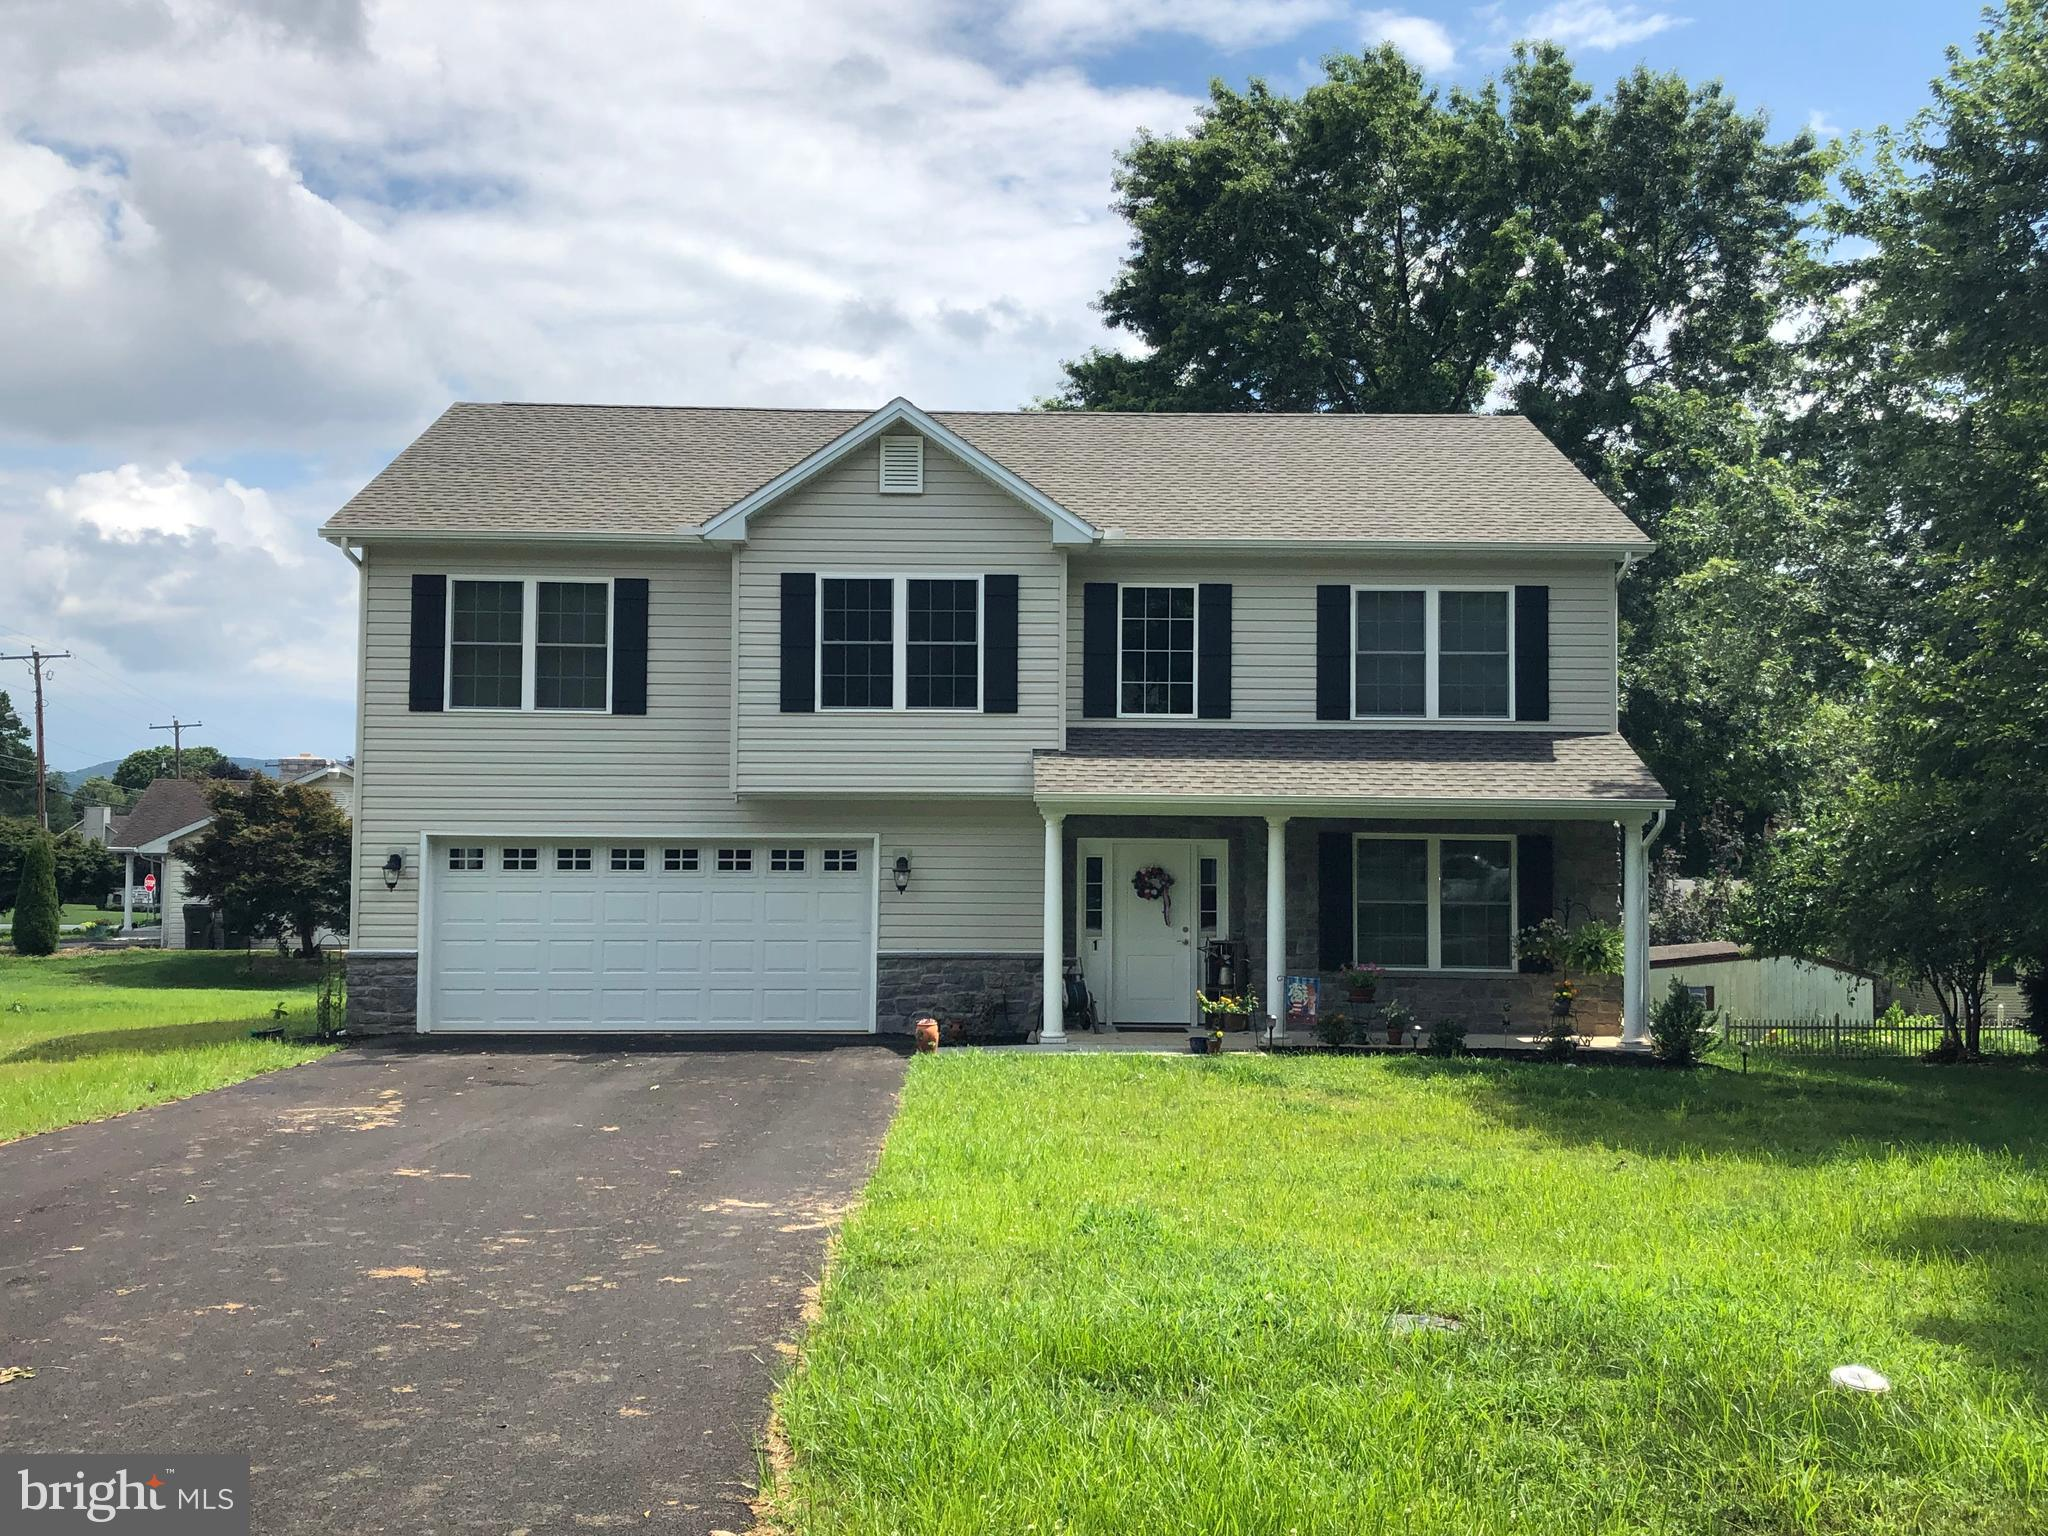 217 WHITE OAK CIRCLE, MOUNT HOLLY SPRINGS, PA 17065